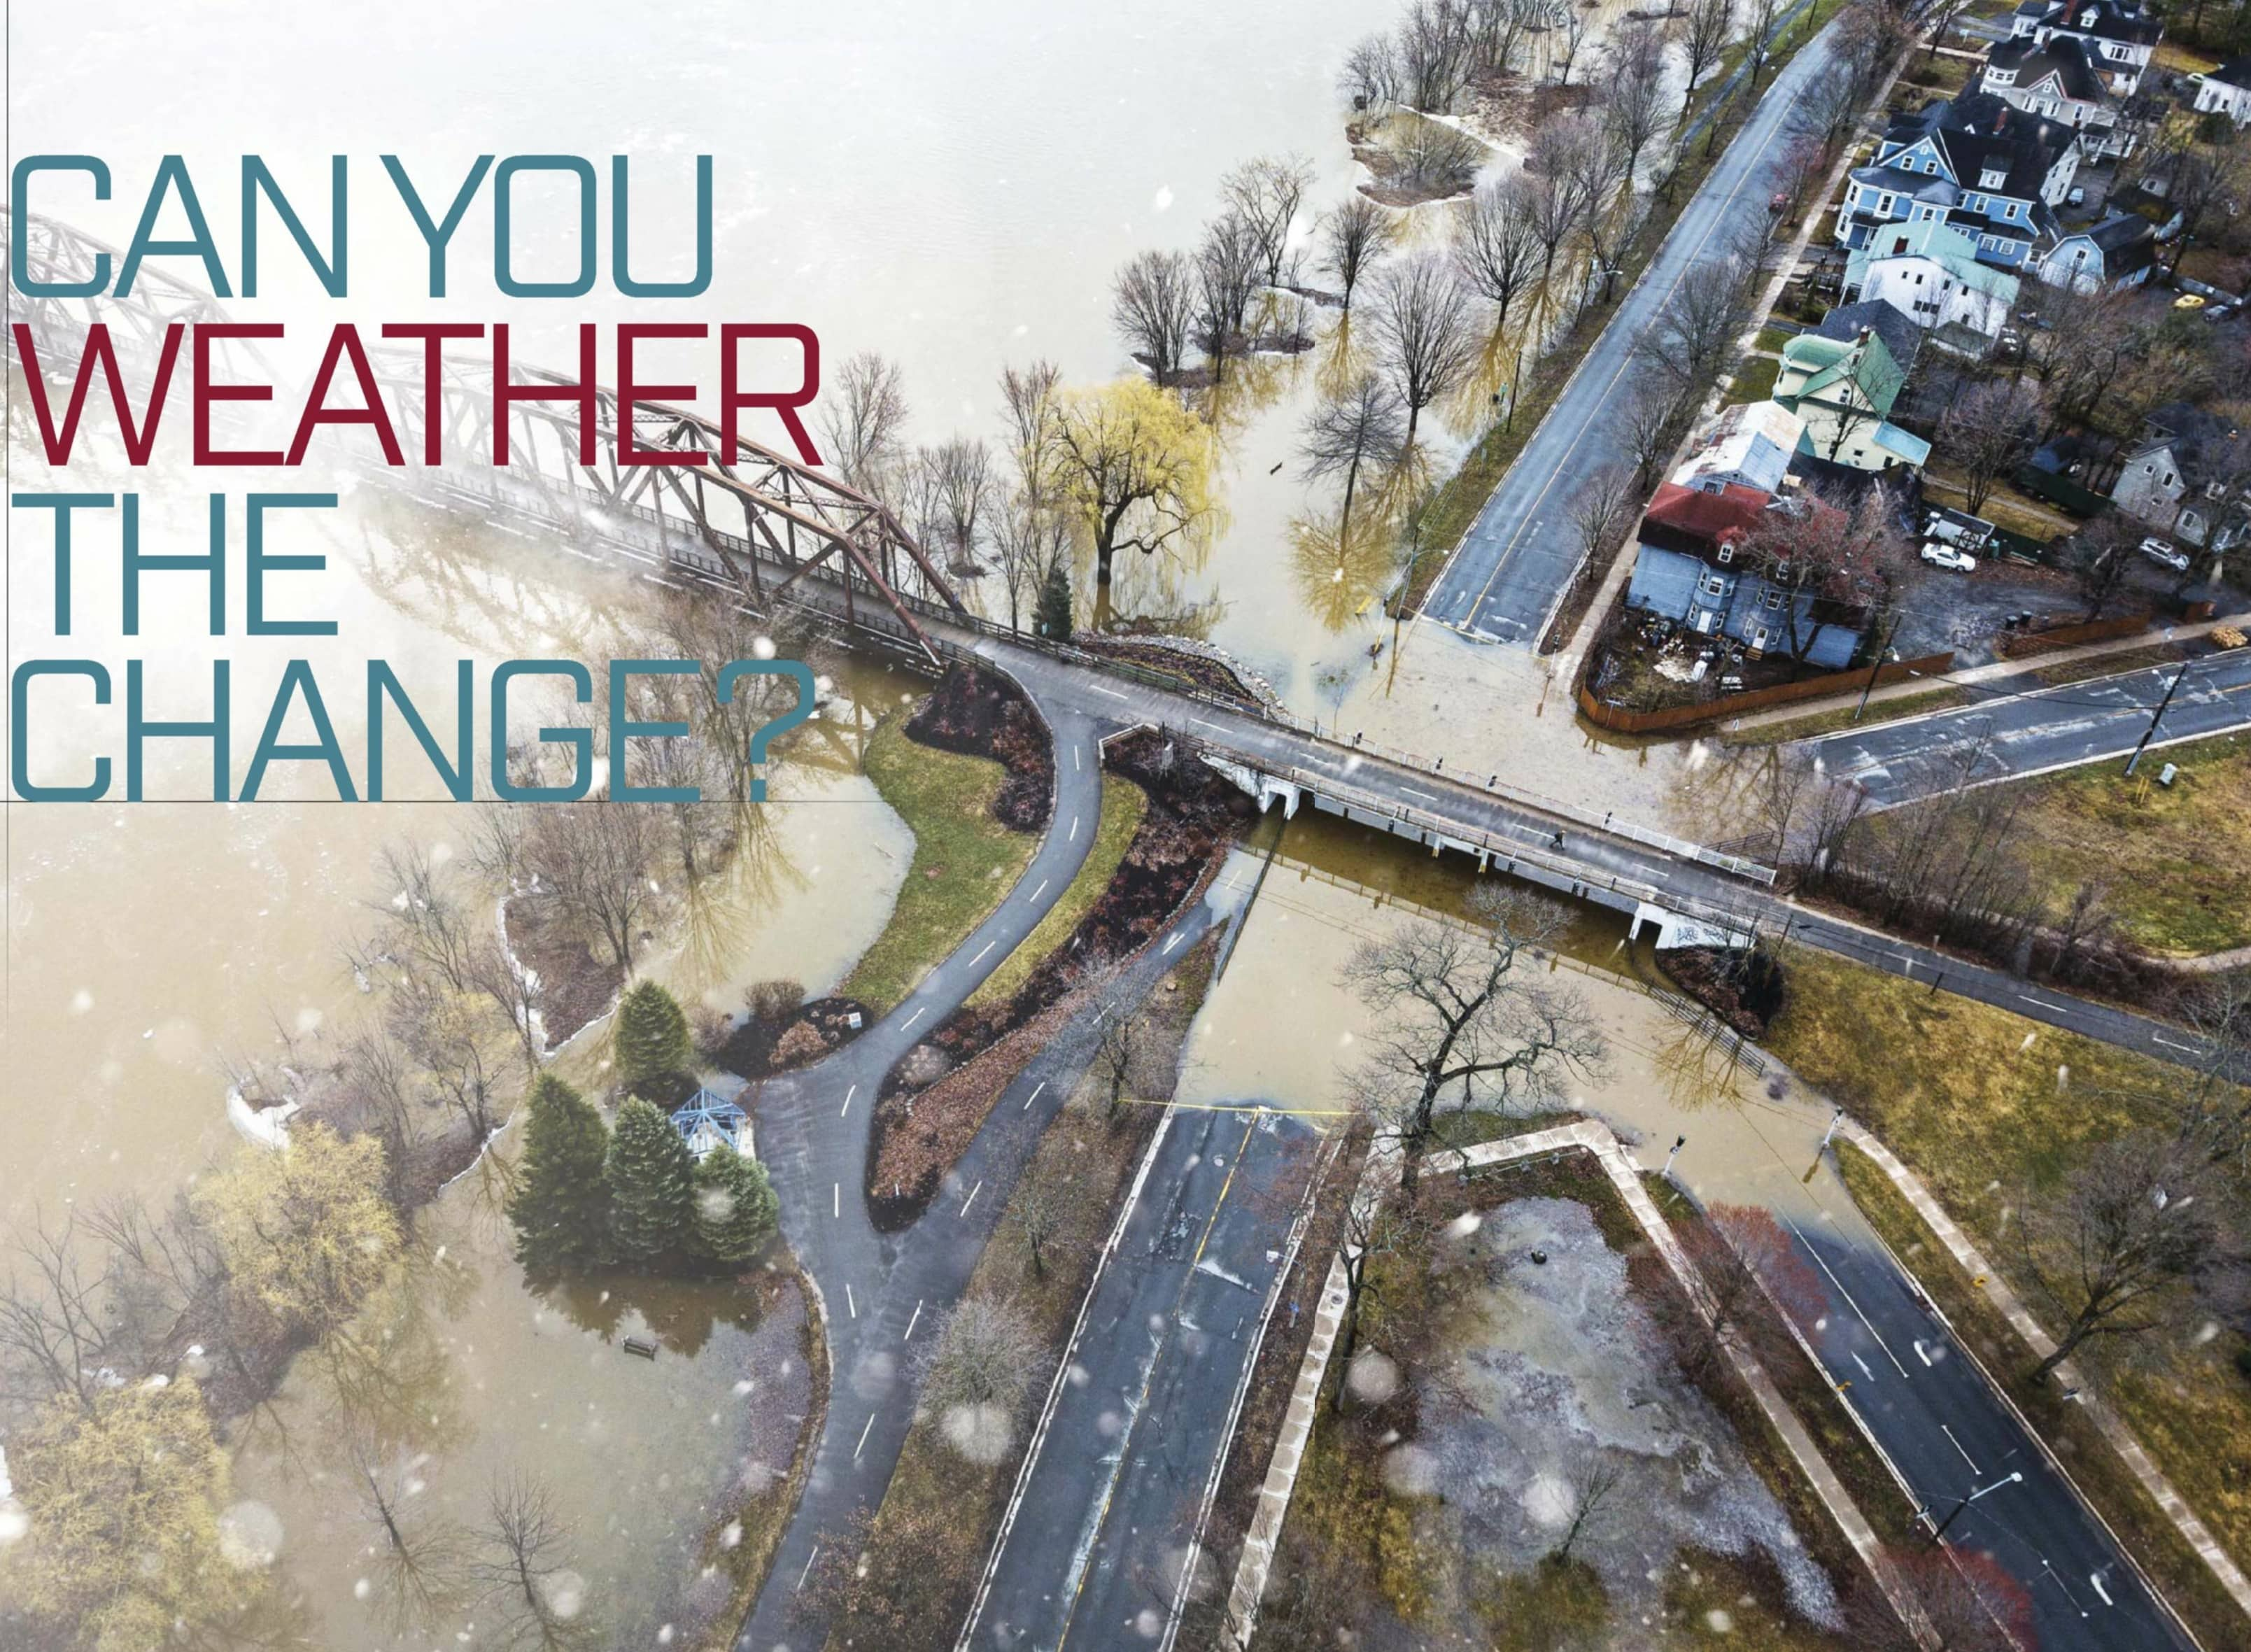 Can You Weather The Change?